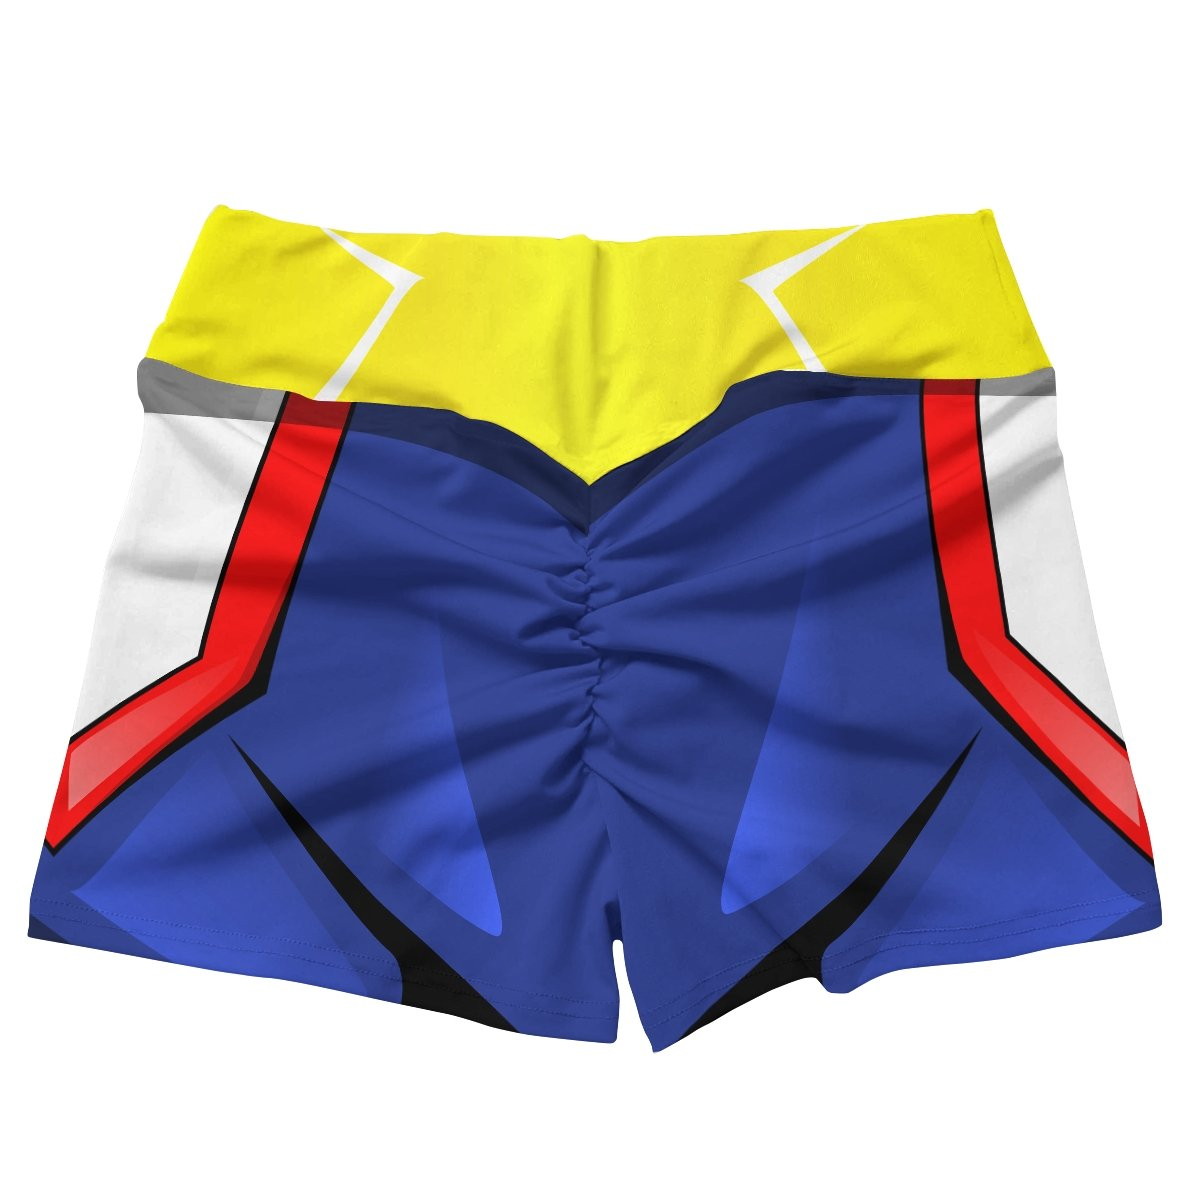 ua high all might active wear set 655275 - Anime Swimsuits